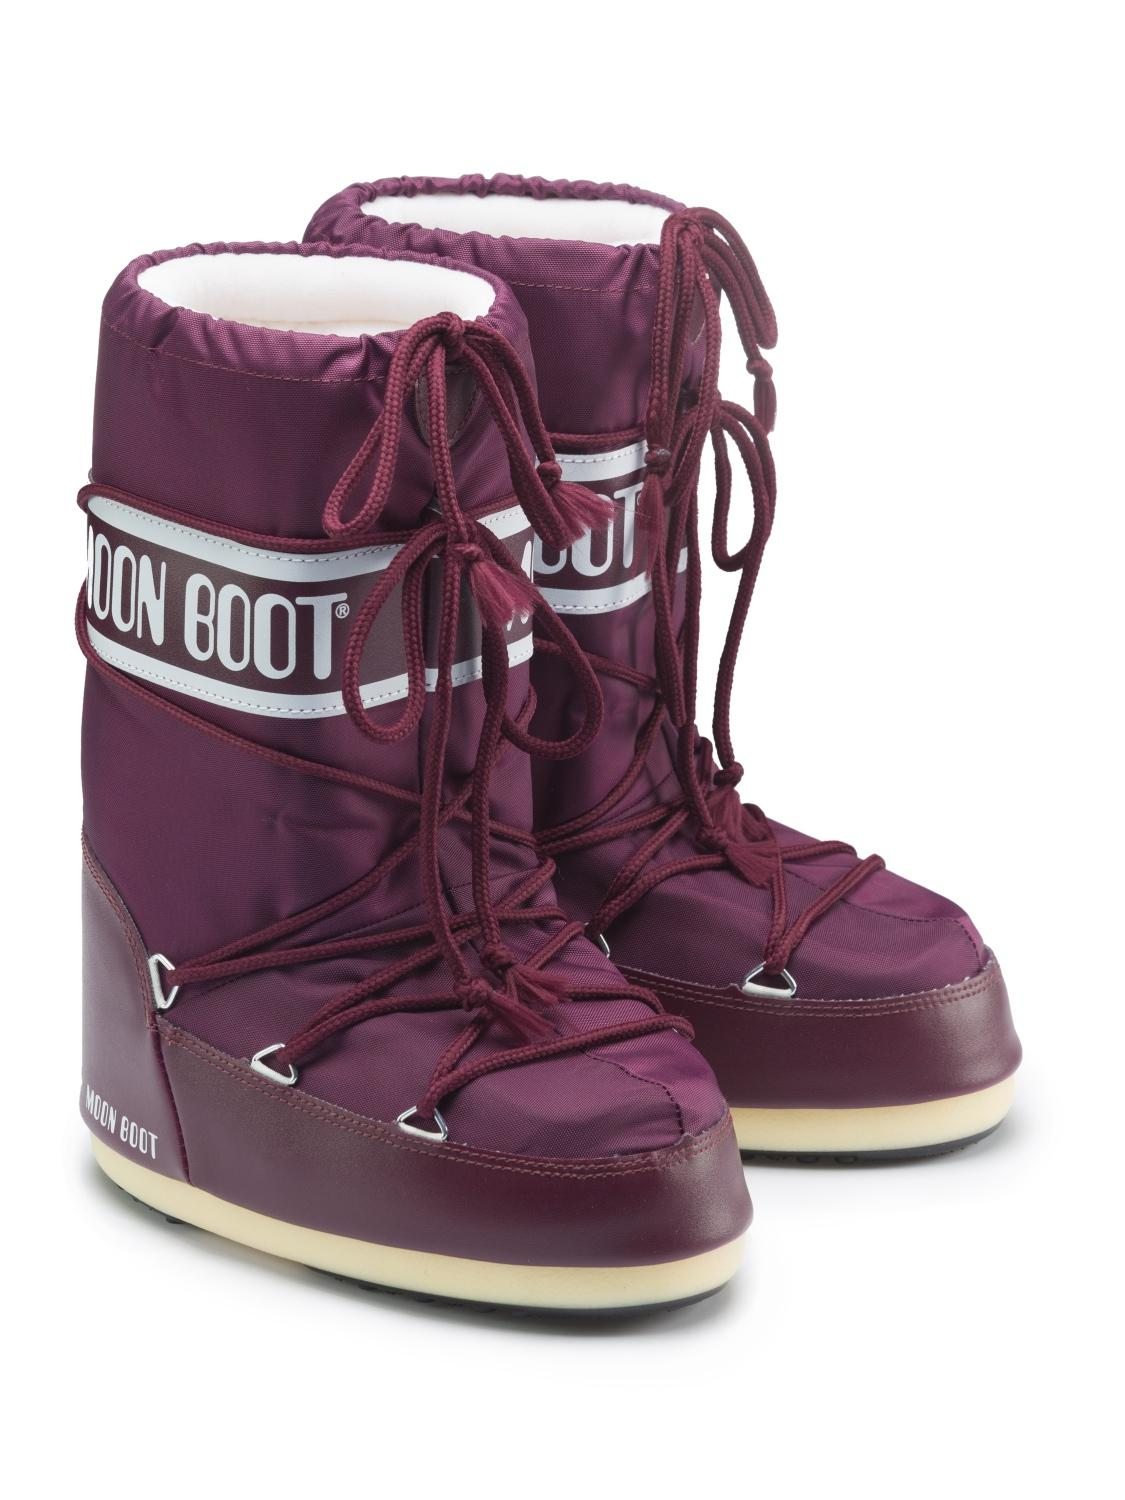 MOON BOOT boots red for girls| NICKIS.com